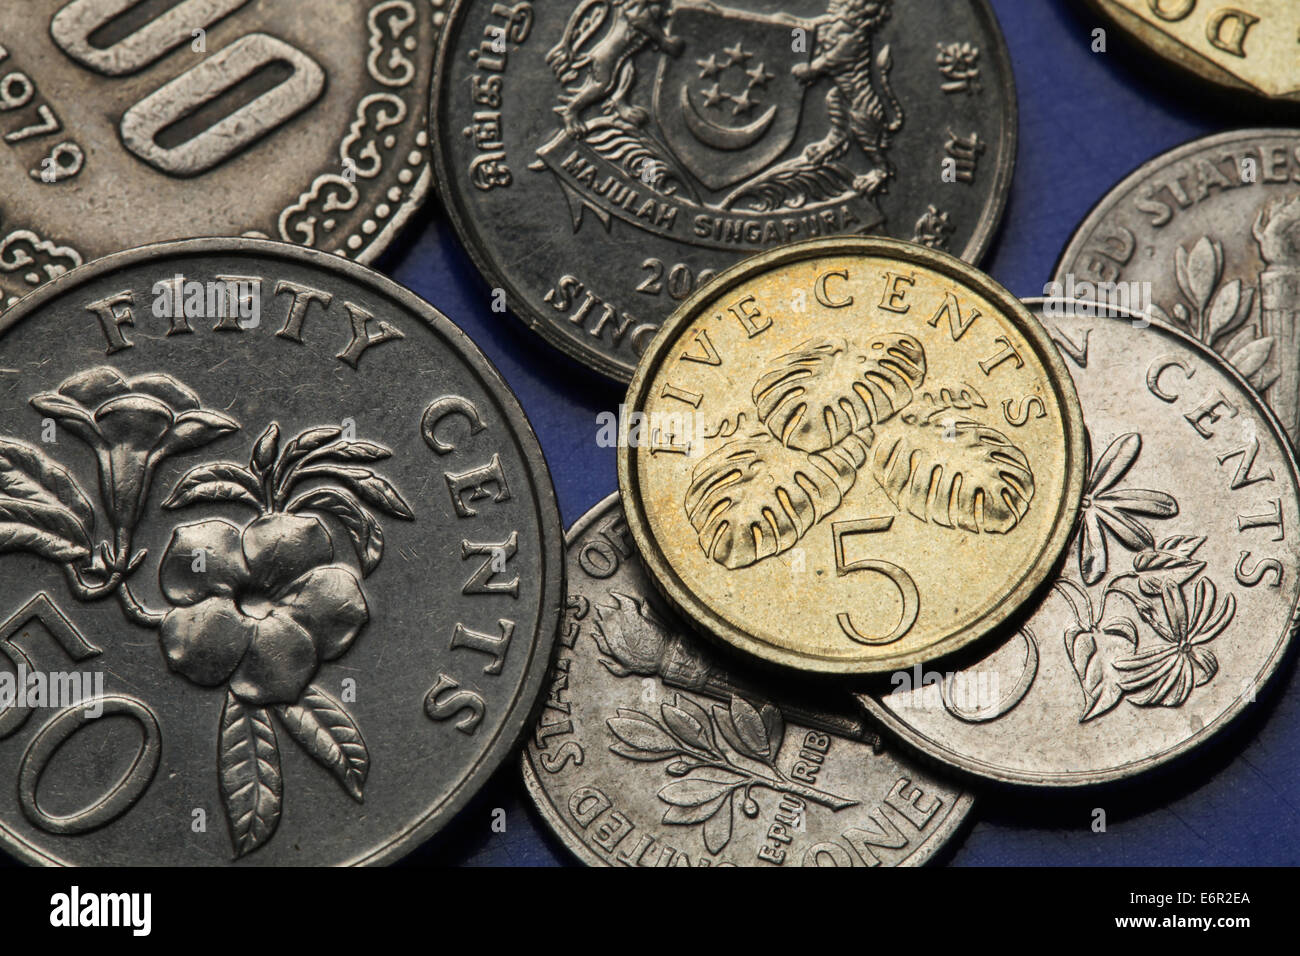 Coins of Singapore. Fruit salad plant (Monstera deliciosa) depicted in the Singapore five cents coin. - Stock Image